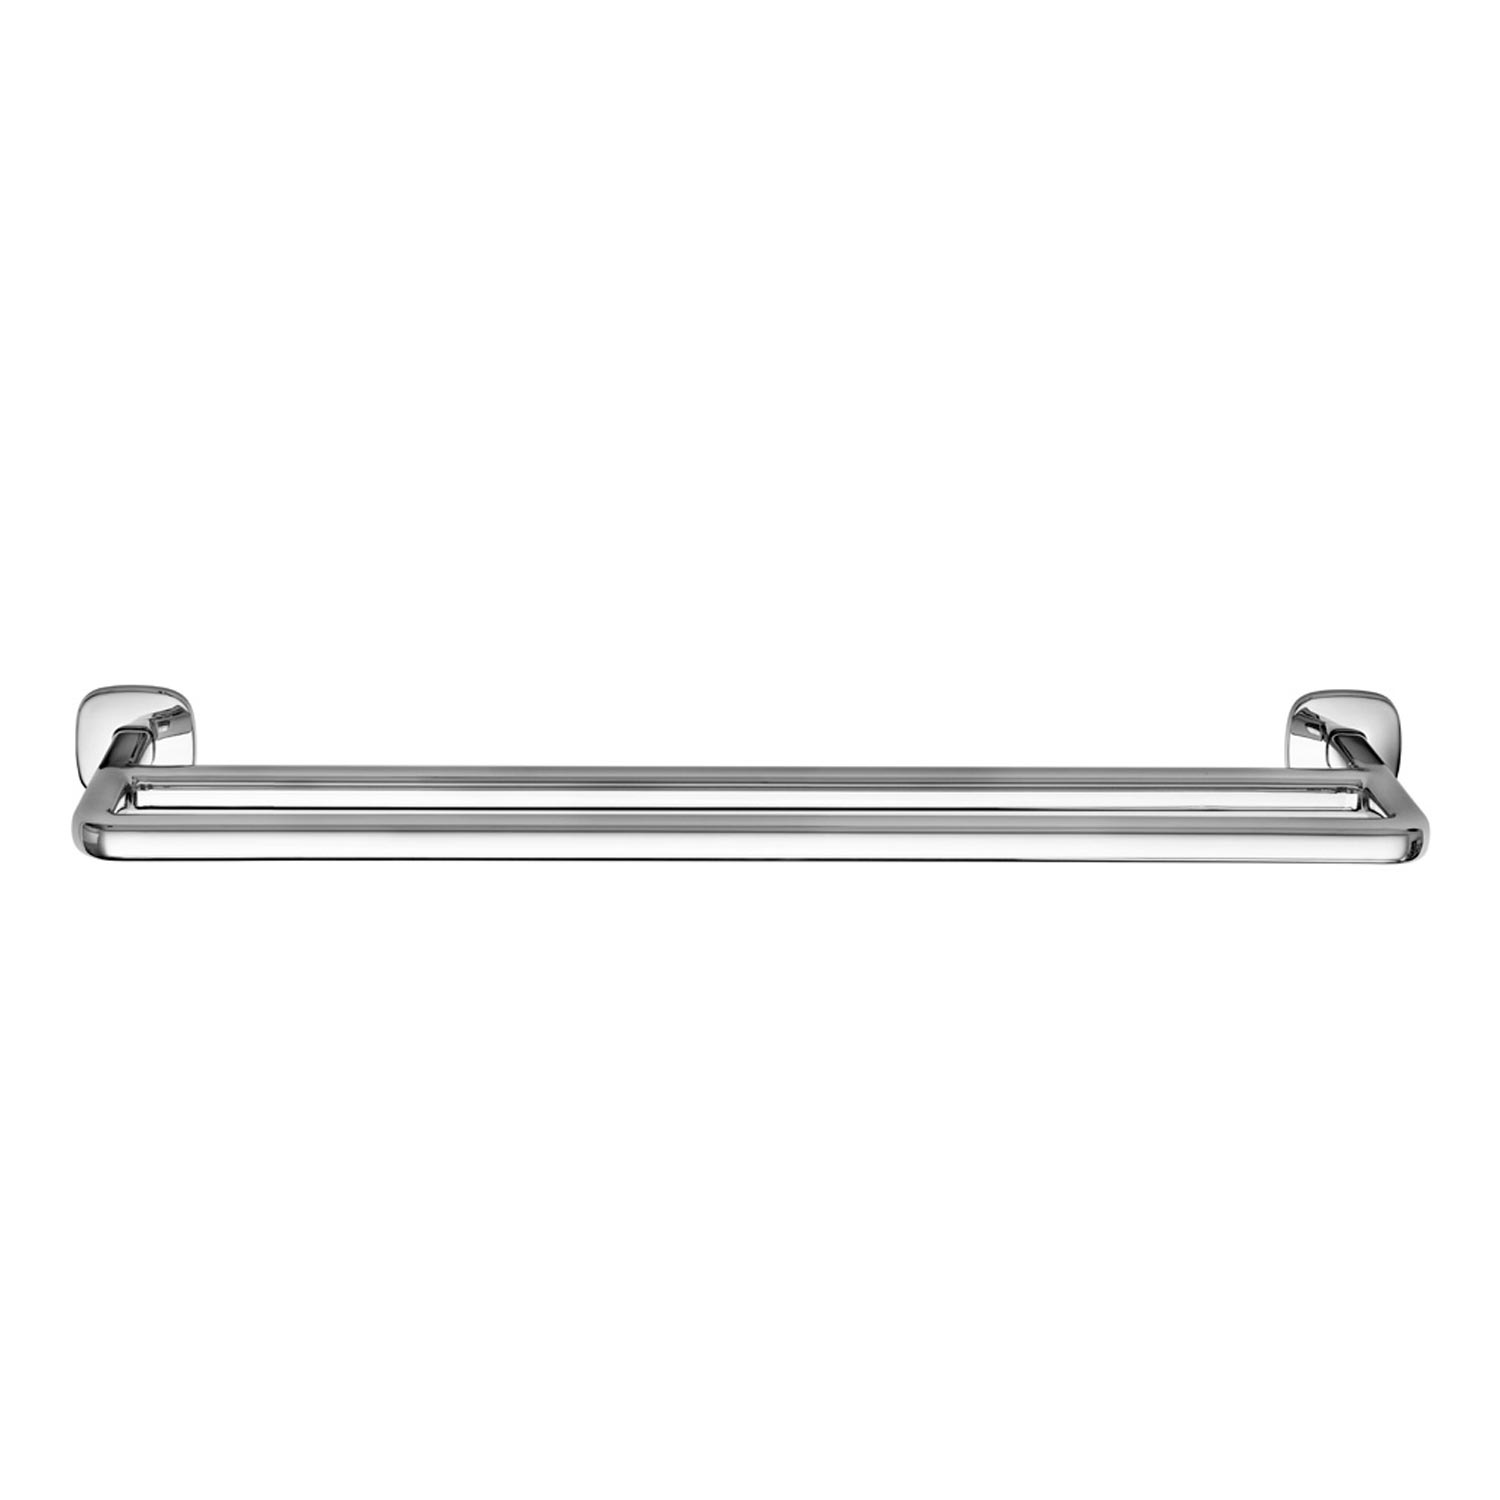 Robert Welch Burford Towel Rail Double, Stainless Steel | Le